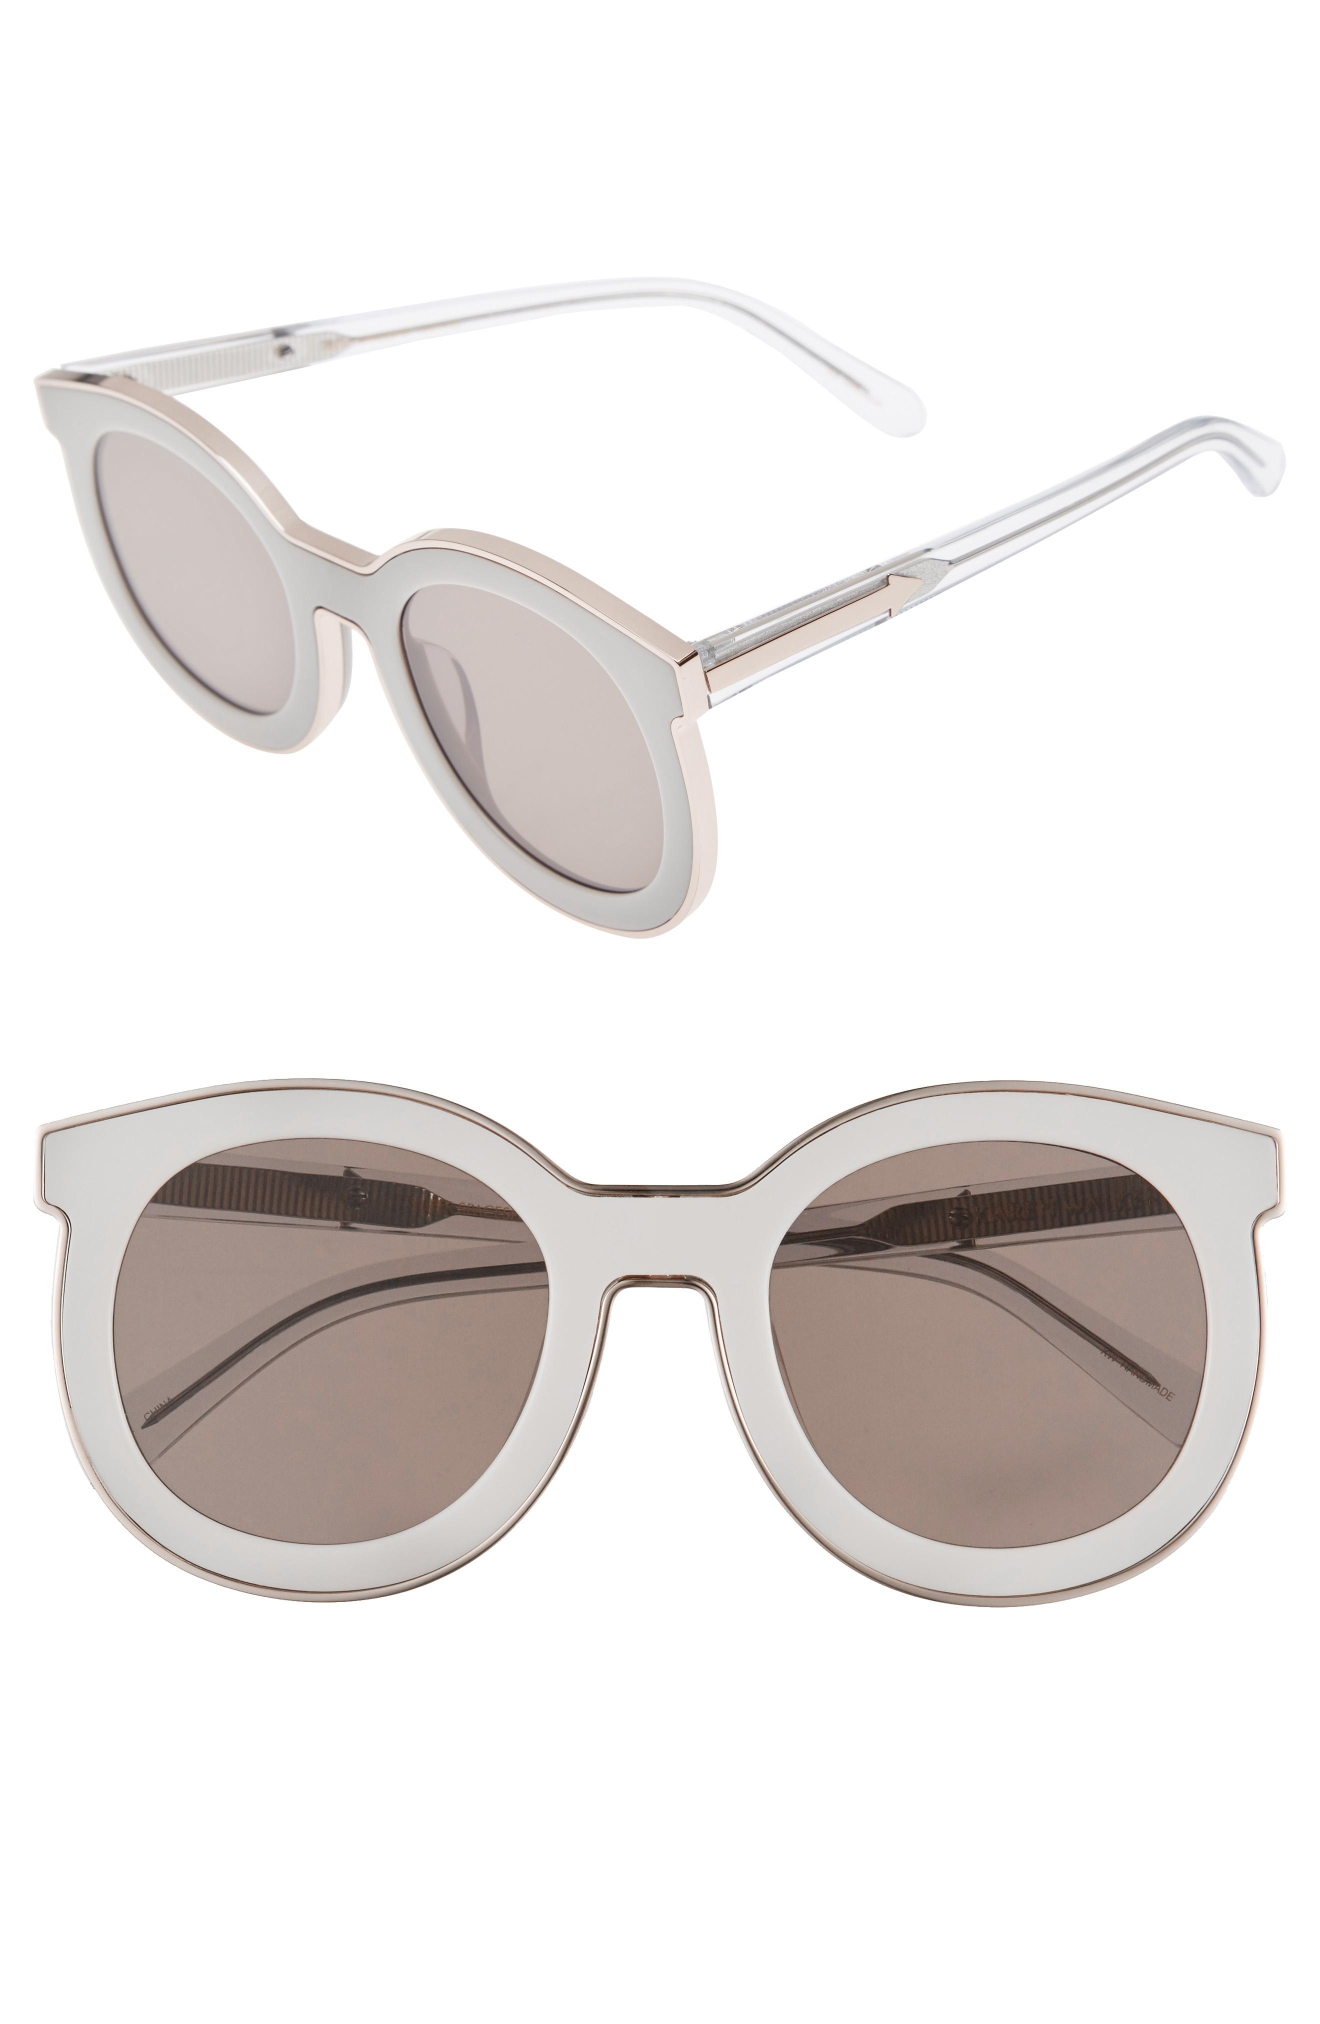 KAREN WALKER 'Super Spaceship - Arrowed by Karen' Sunglasses, $320, Nordstrom.com (Image: Courtesy Nordstrom)